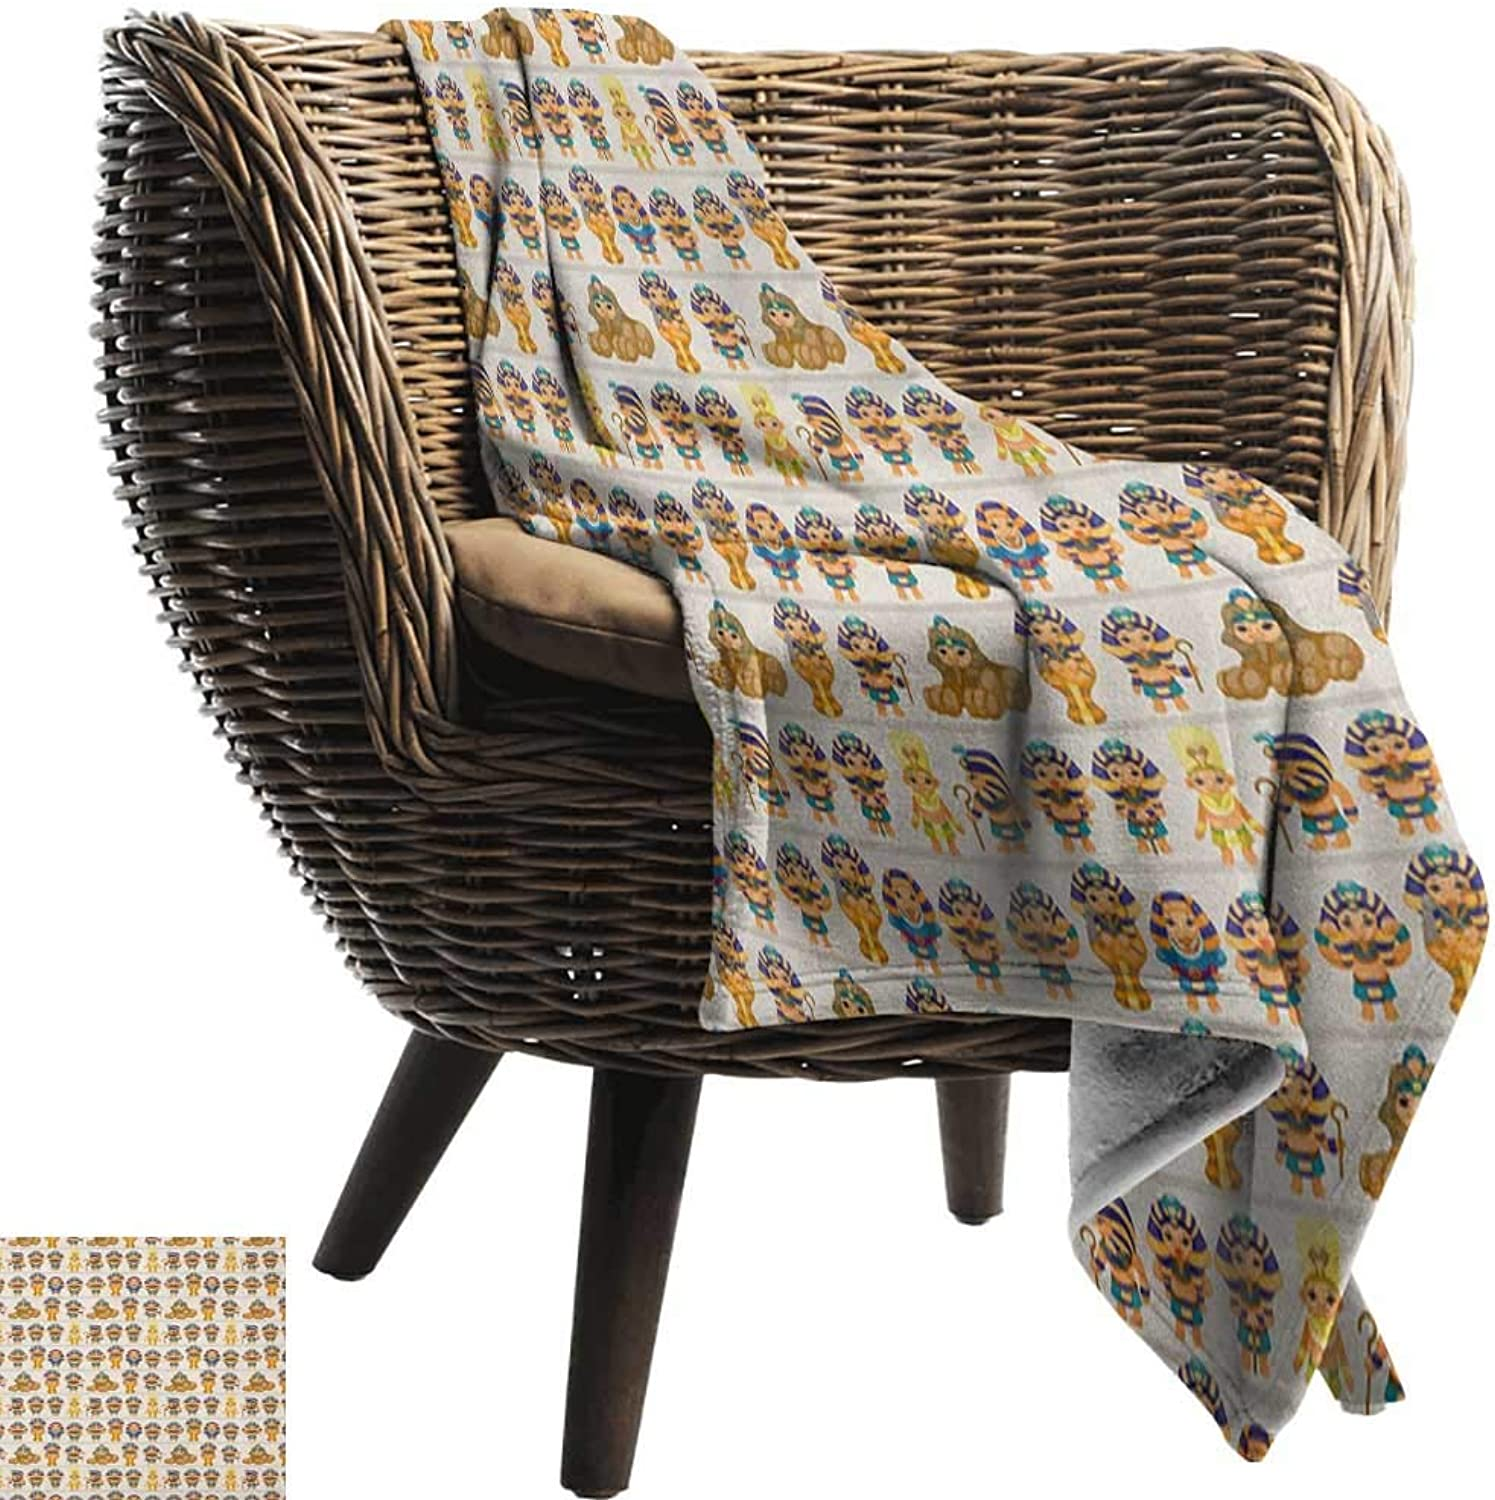 Sunnyhome Egyptian,Warm Microfiber All Season Blanket,Cute Kids Design with Egyptian Cartoon Ancient Figures King Queen Myth Pattern 60 x50 ,Super Soft and Comfortable,Suitable for Sofas,Chairs,beds